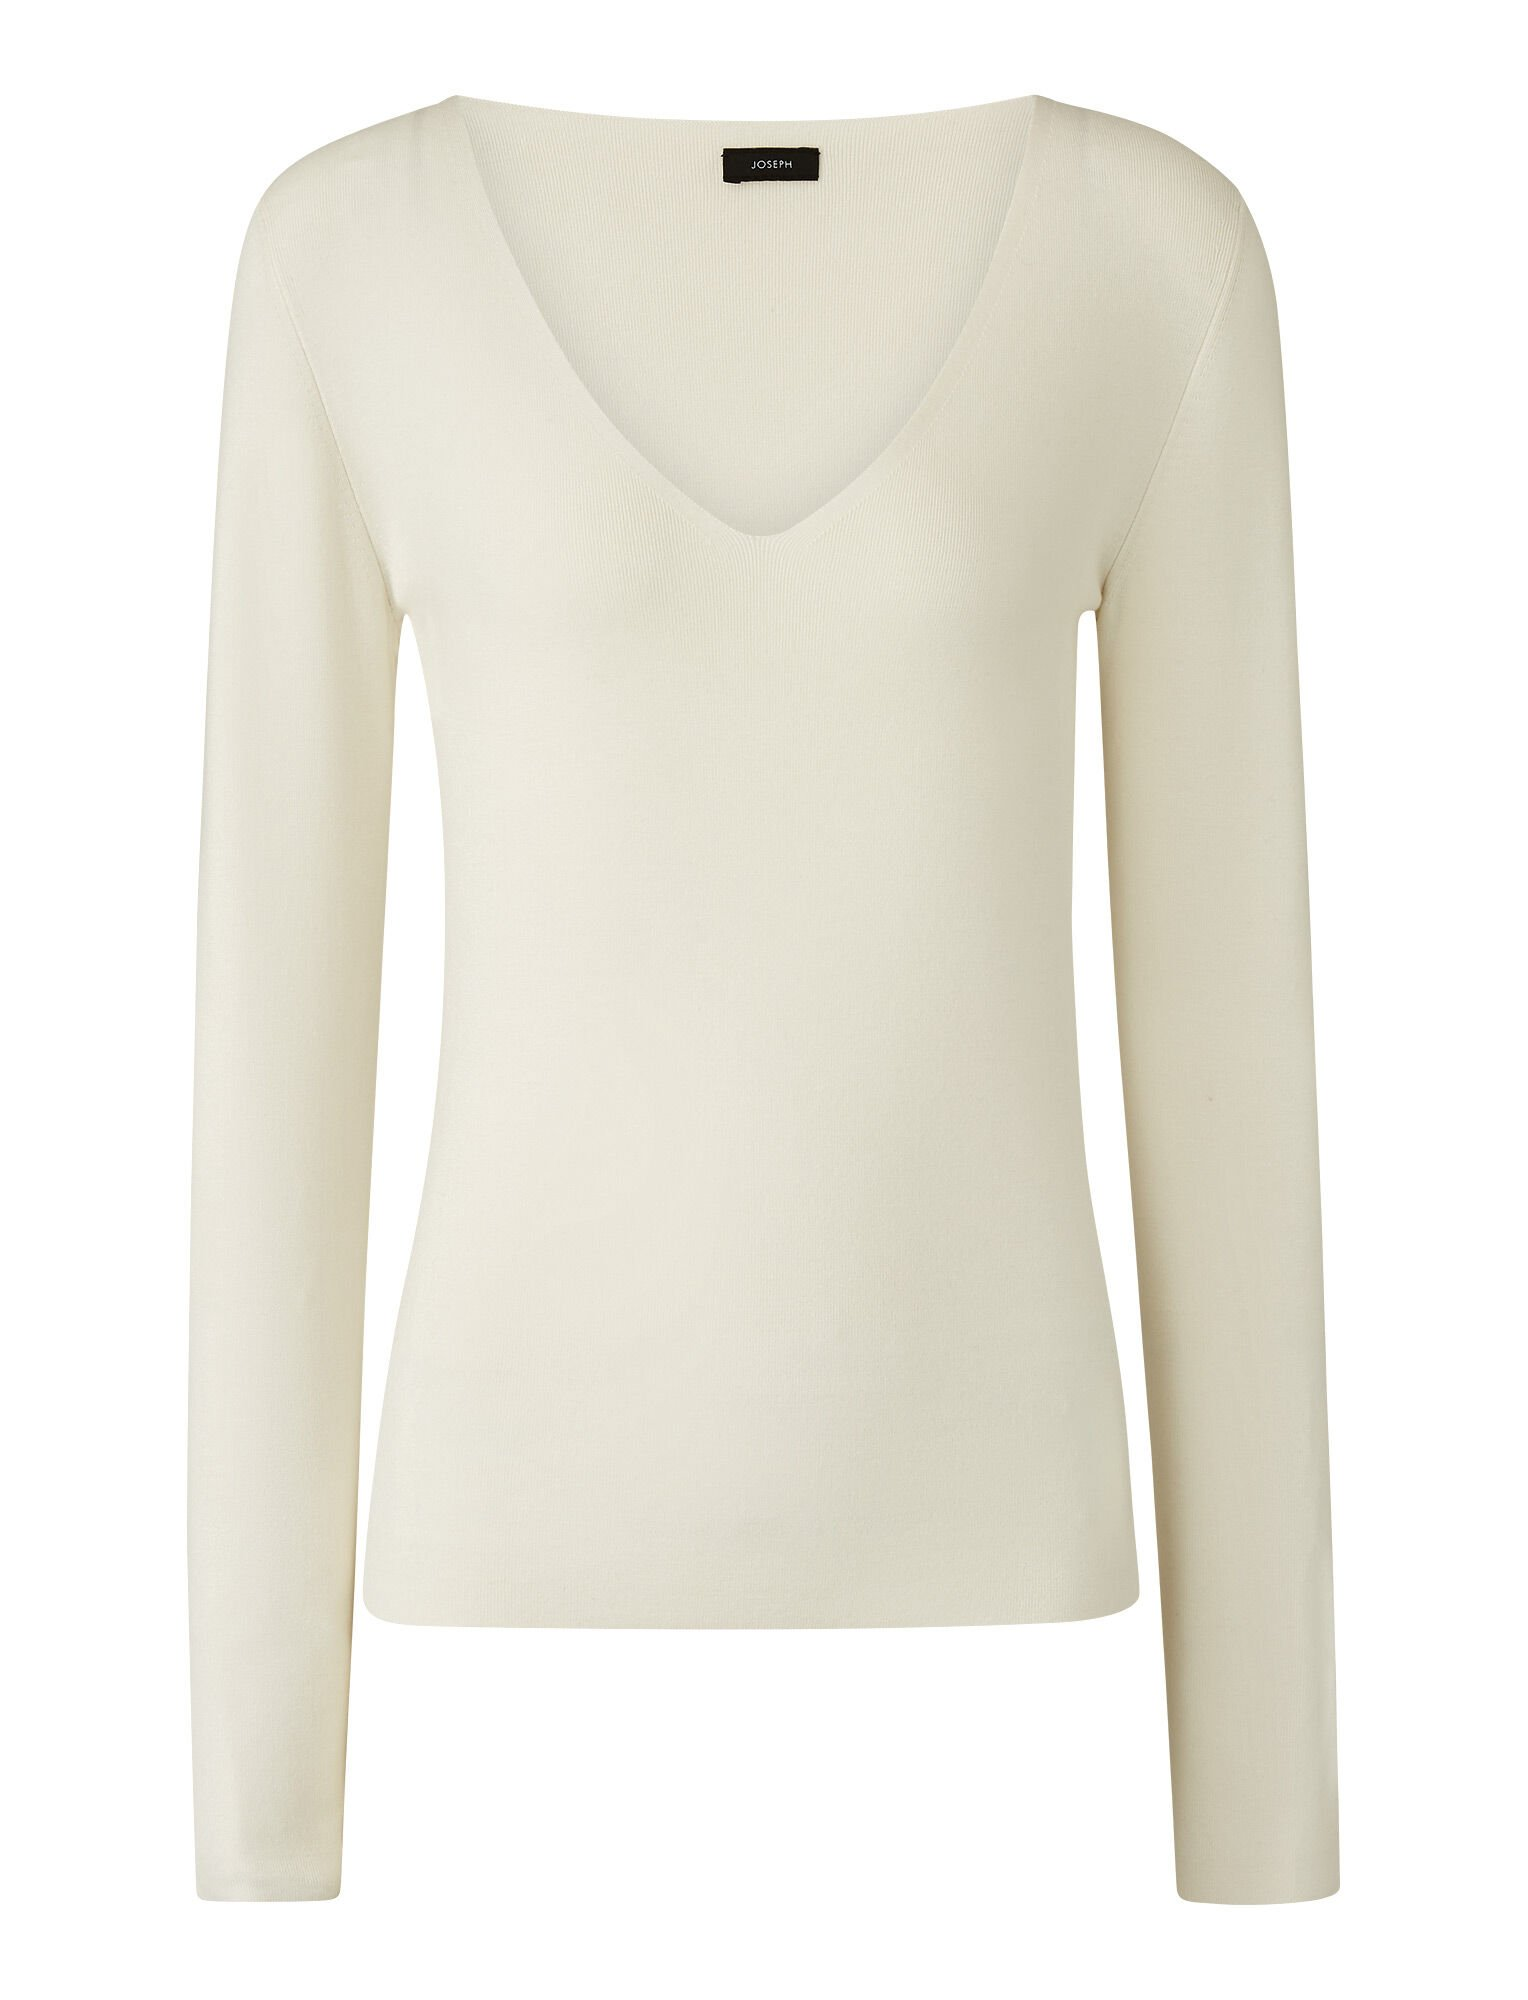 Joseph, V Neck Silk Stretch Knit, in IVORY